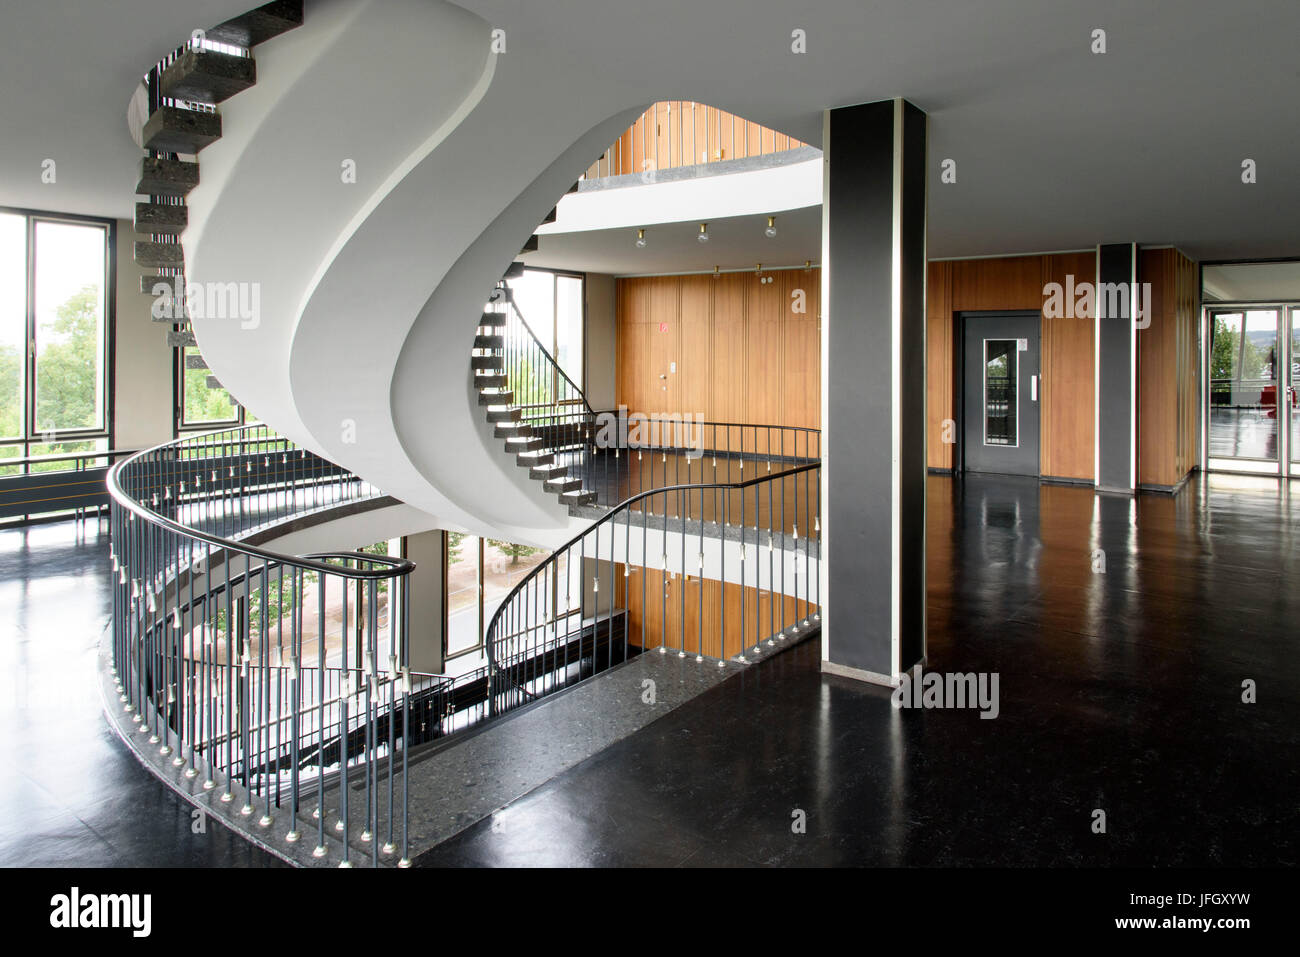 The 50s stairwell in the compulsory health insurance scheme building, Kassel, Hessen, Germany - Stock Image